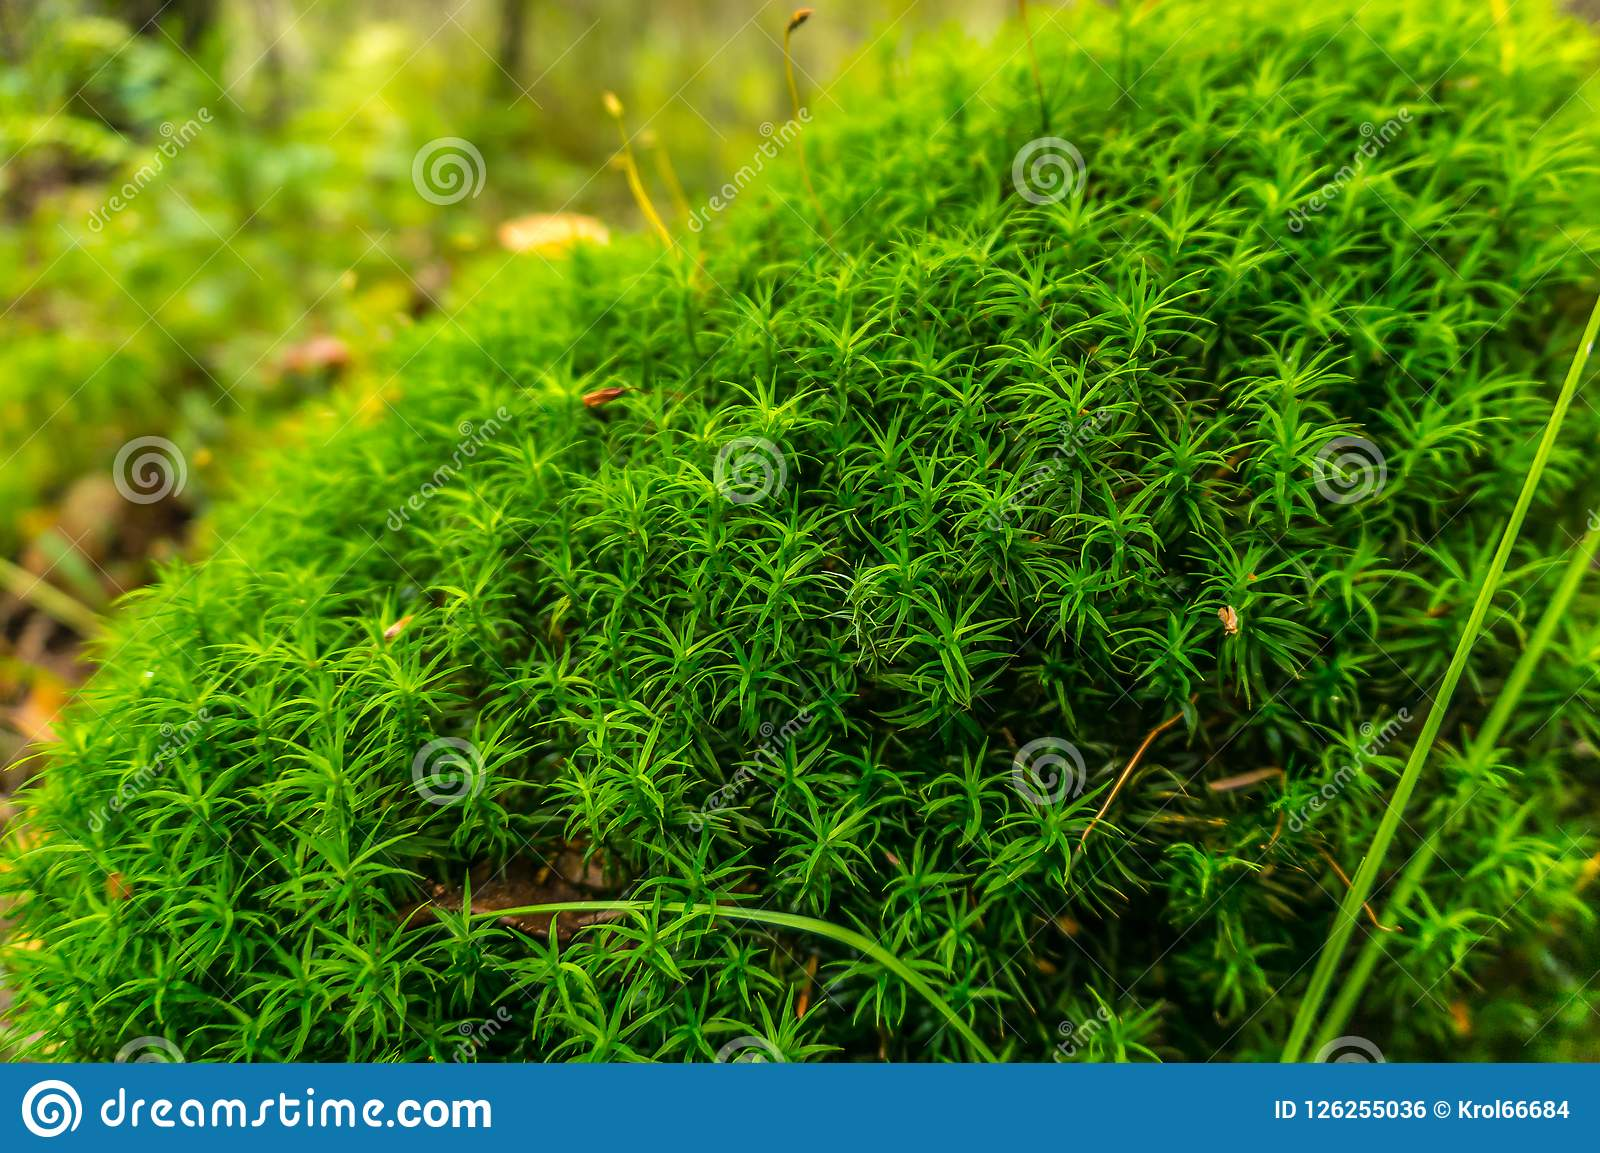 Forest moss on the old stump.